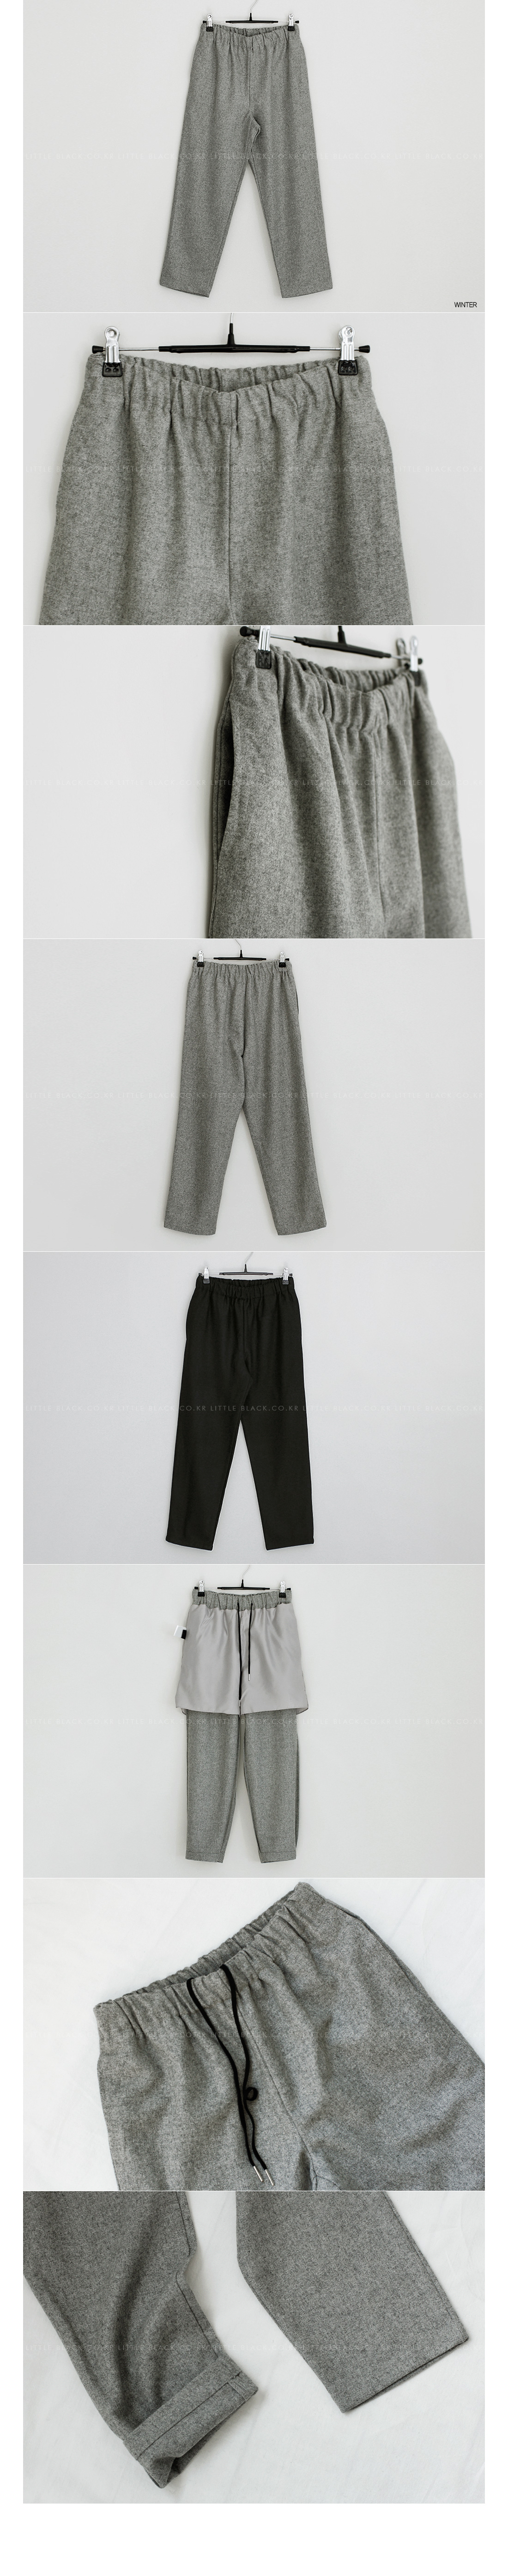 Drawstring Waist Relaxed Fit Crop Pants|